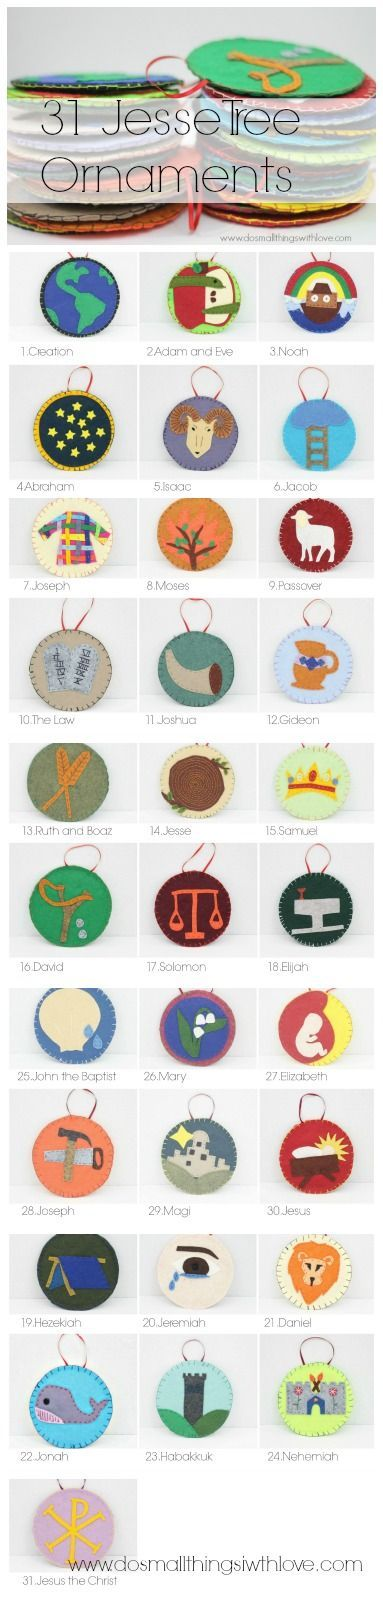 Best 25 ornaments ideas ideas on pinterest christmas for Jesse tree ornament templates